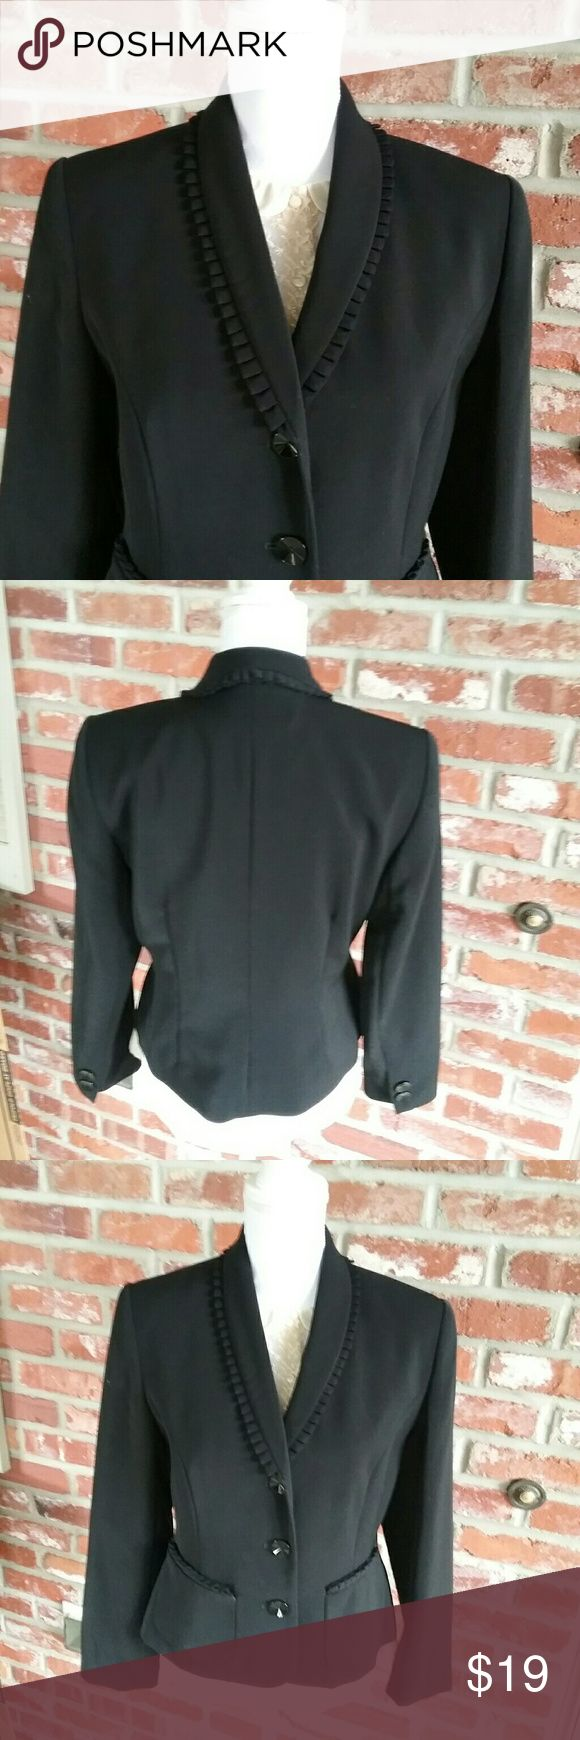 "SAG Harbor Black 10P Suit Blazer Jacket Pleated This is a black Sag Harbor size 10 petite suit Blazer jacket coat. It has pleats around the neckline in the collar. It is lined. Measurements : 19"" Armpit to Armpit  22"" Neck to hem 22.5"" Sleeve  It is in good preowned condition with no stains or flaws noted. Sag Harbor Jackets & Coats Blazers"